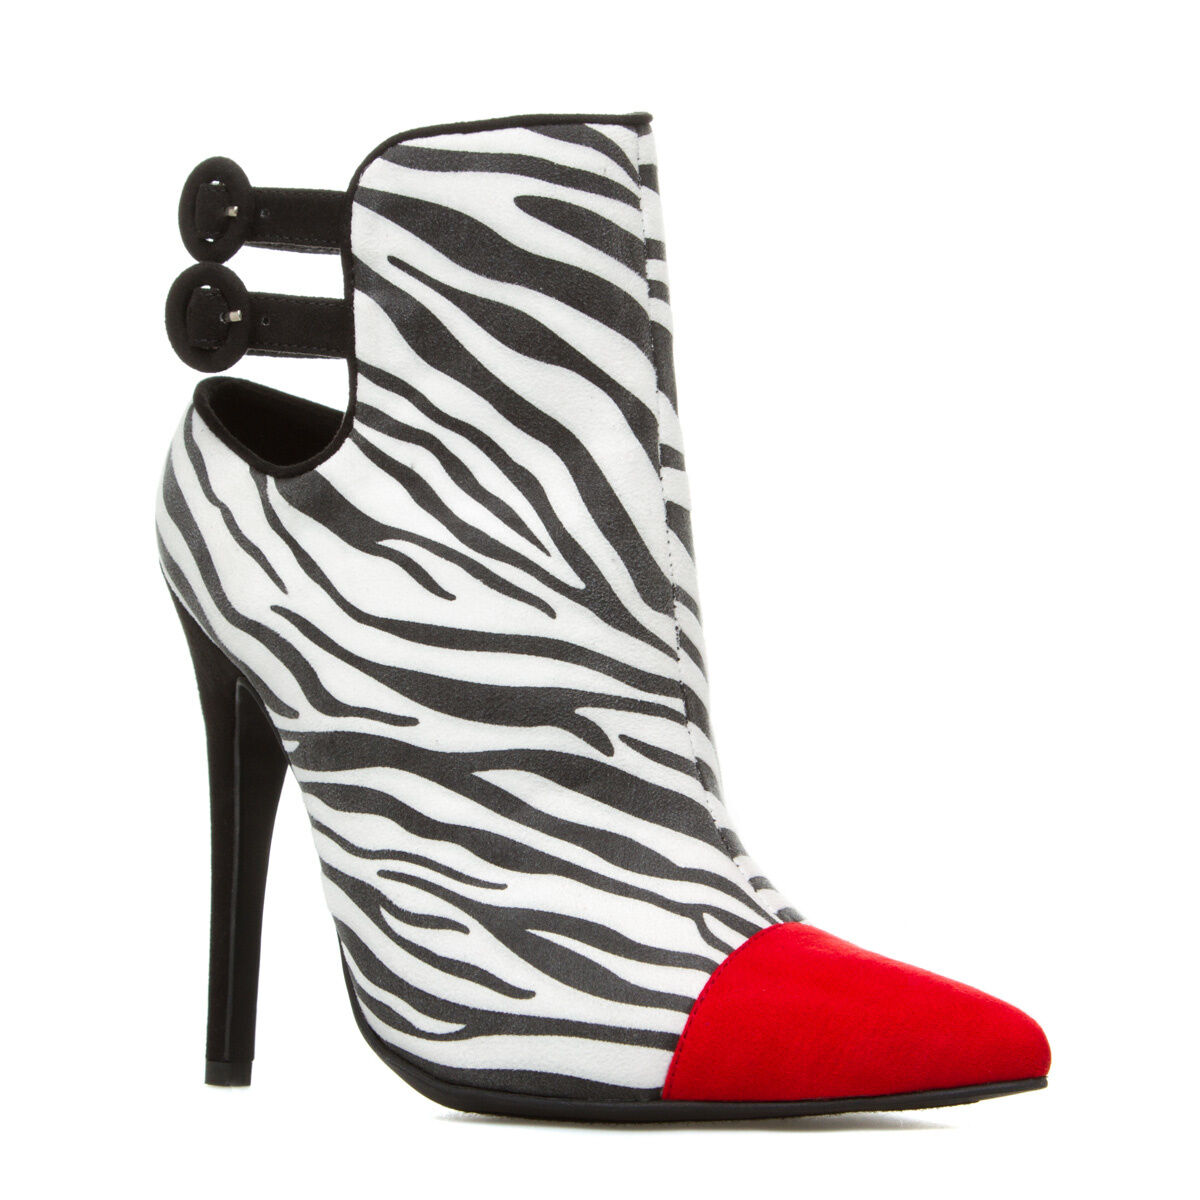 NEW Suede Zebra-Print Bootie Heel w/ Pointed-Toe & Adjustable Ankle Strap Sz 7.5